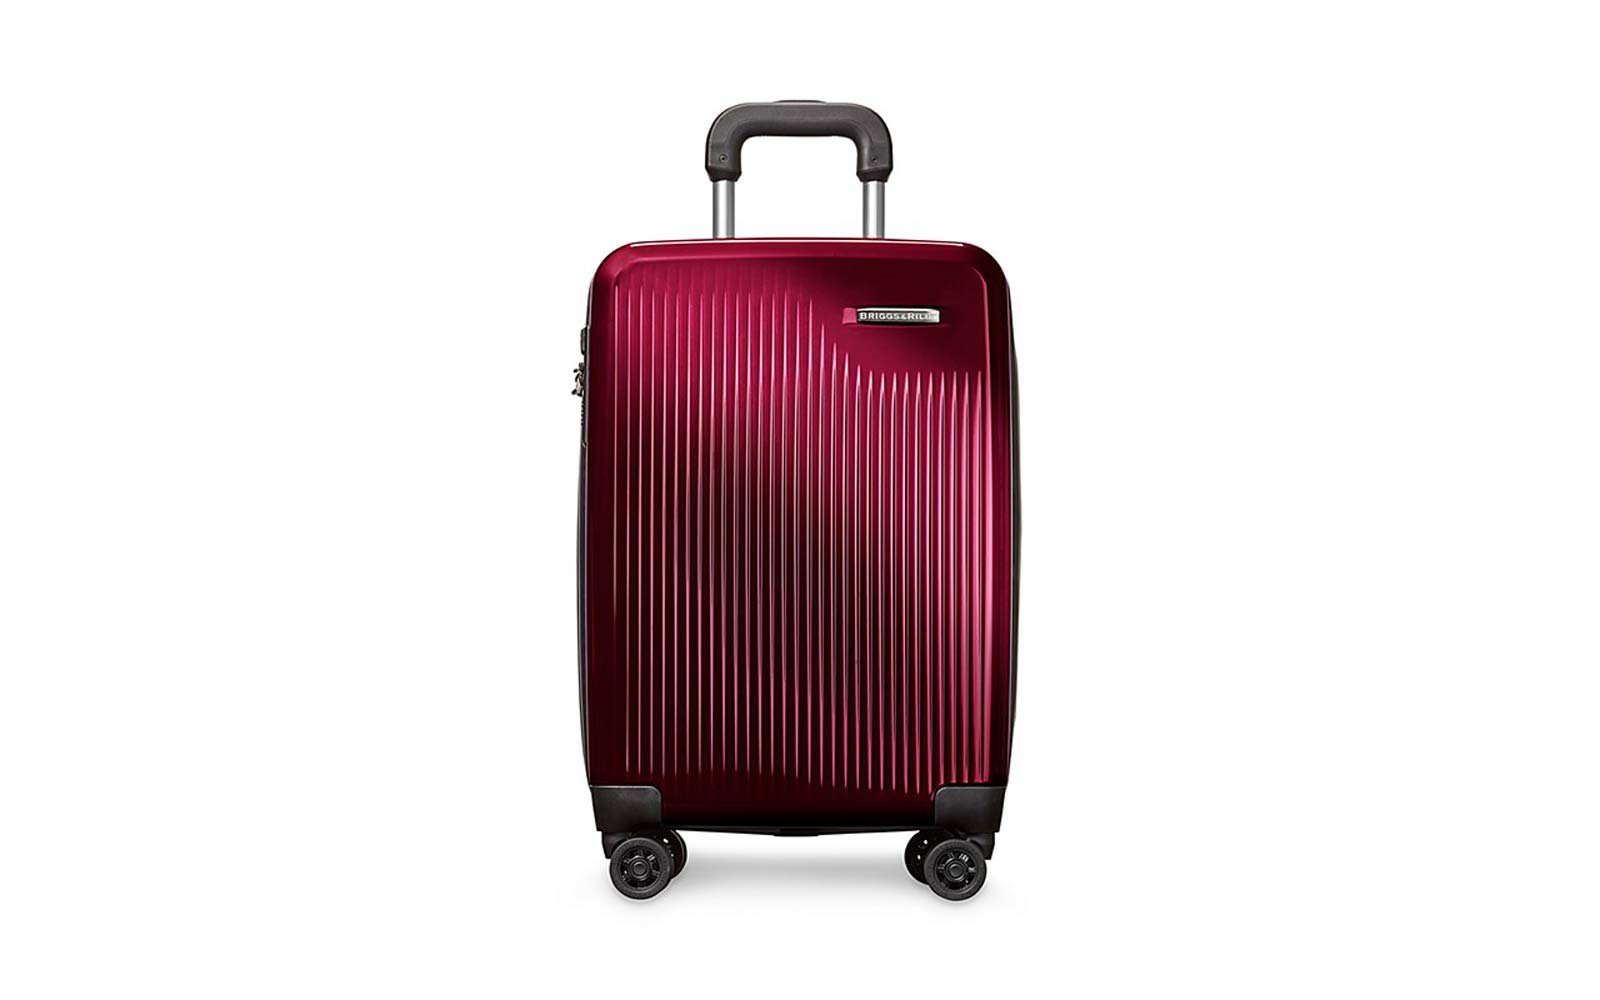 Briggs & Riley International Carry-on